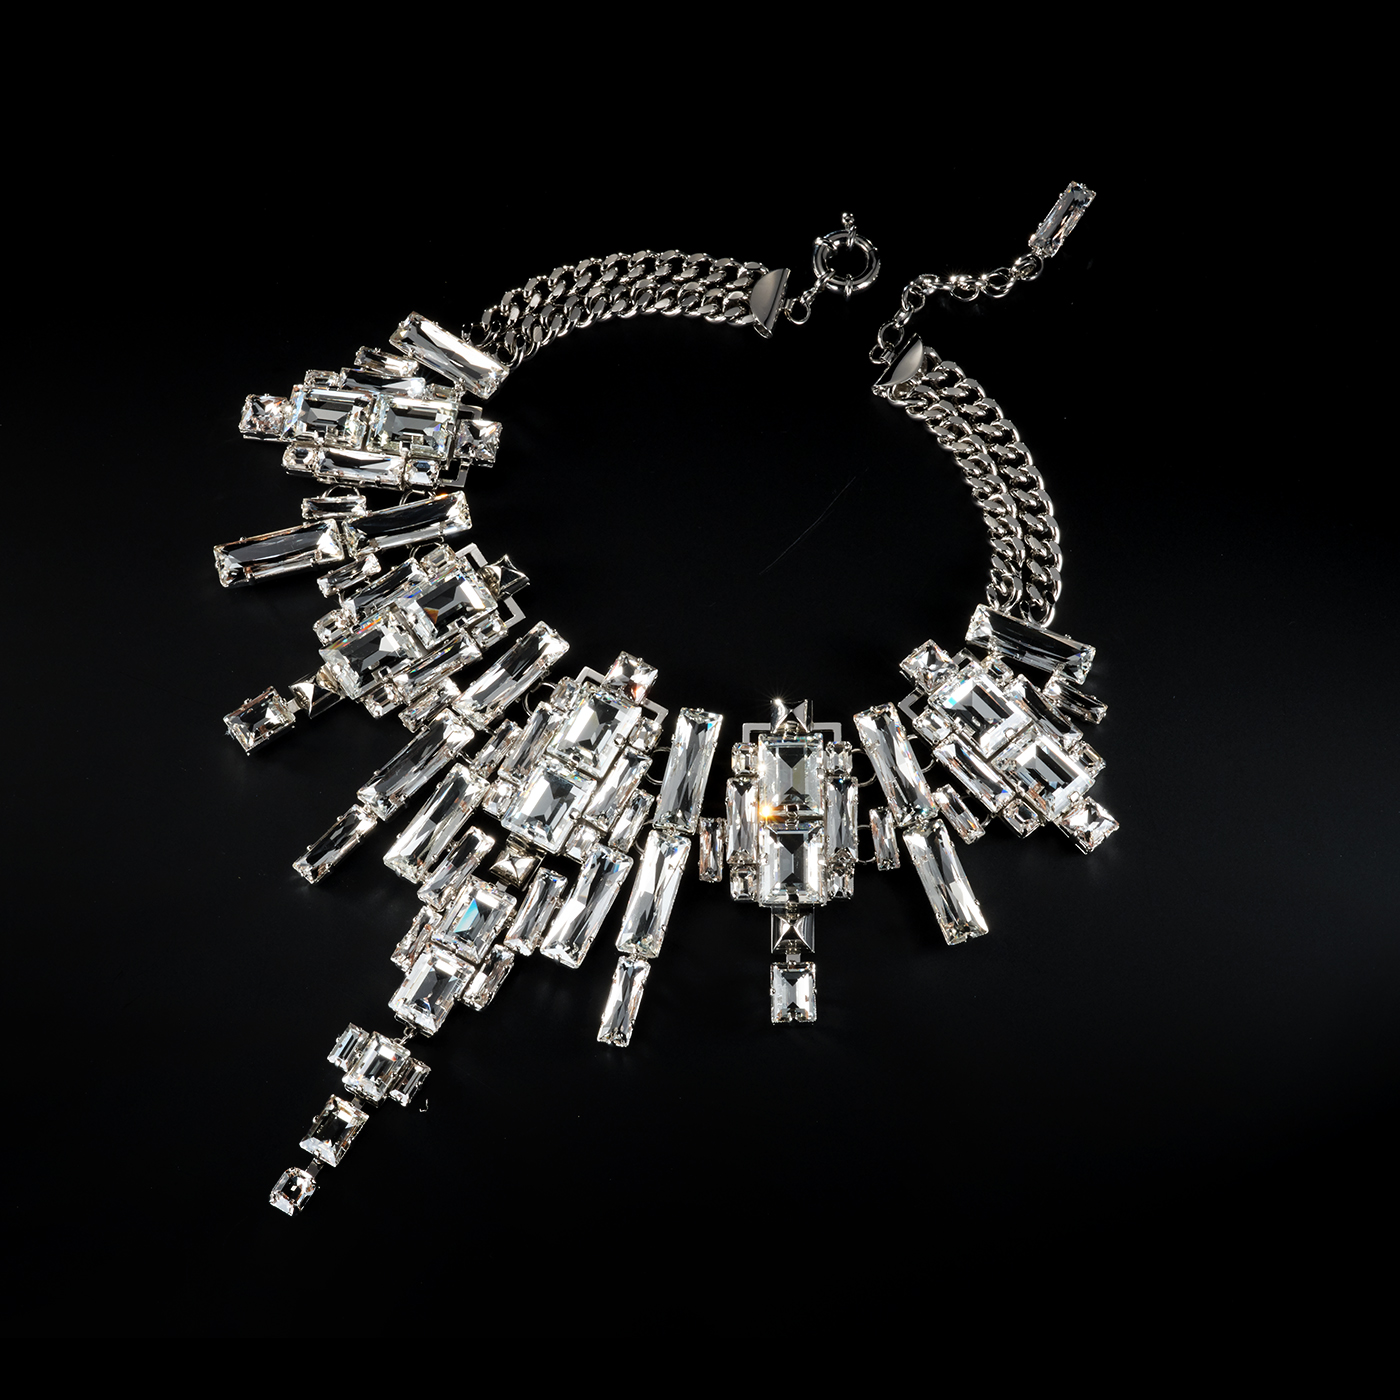 Bjorn van den Berg Decadence Necklace Limited Edition Front Platinum Clear 2